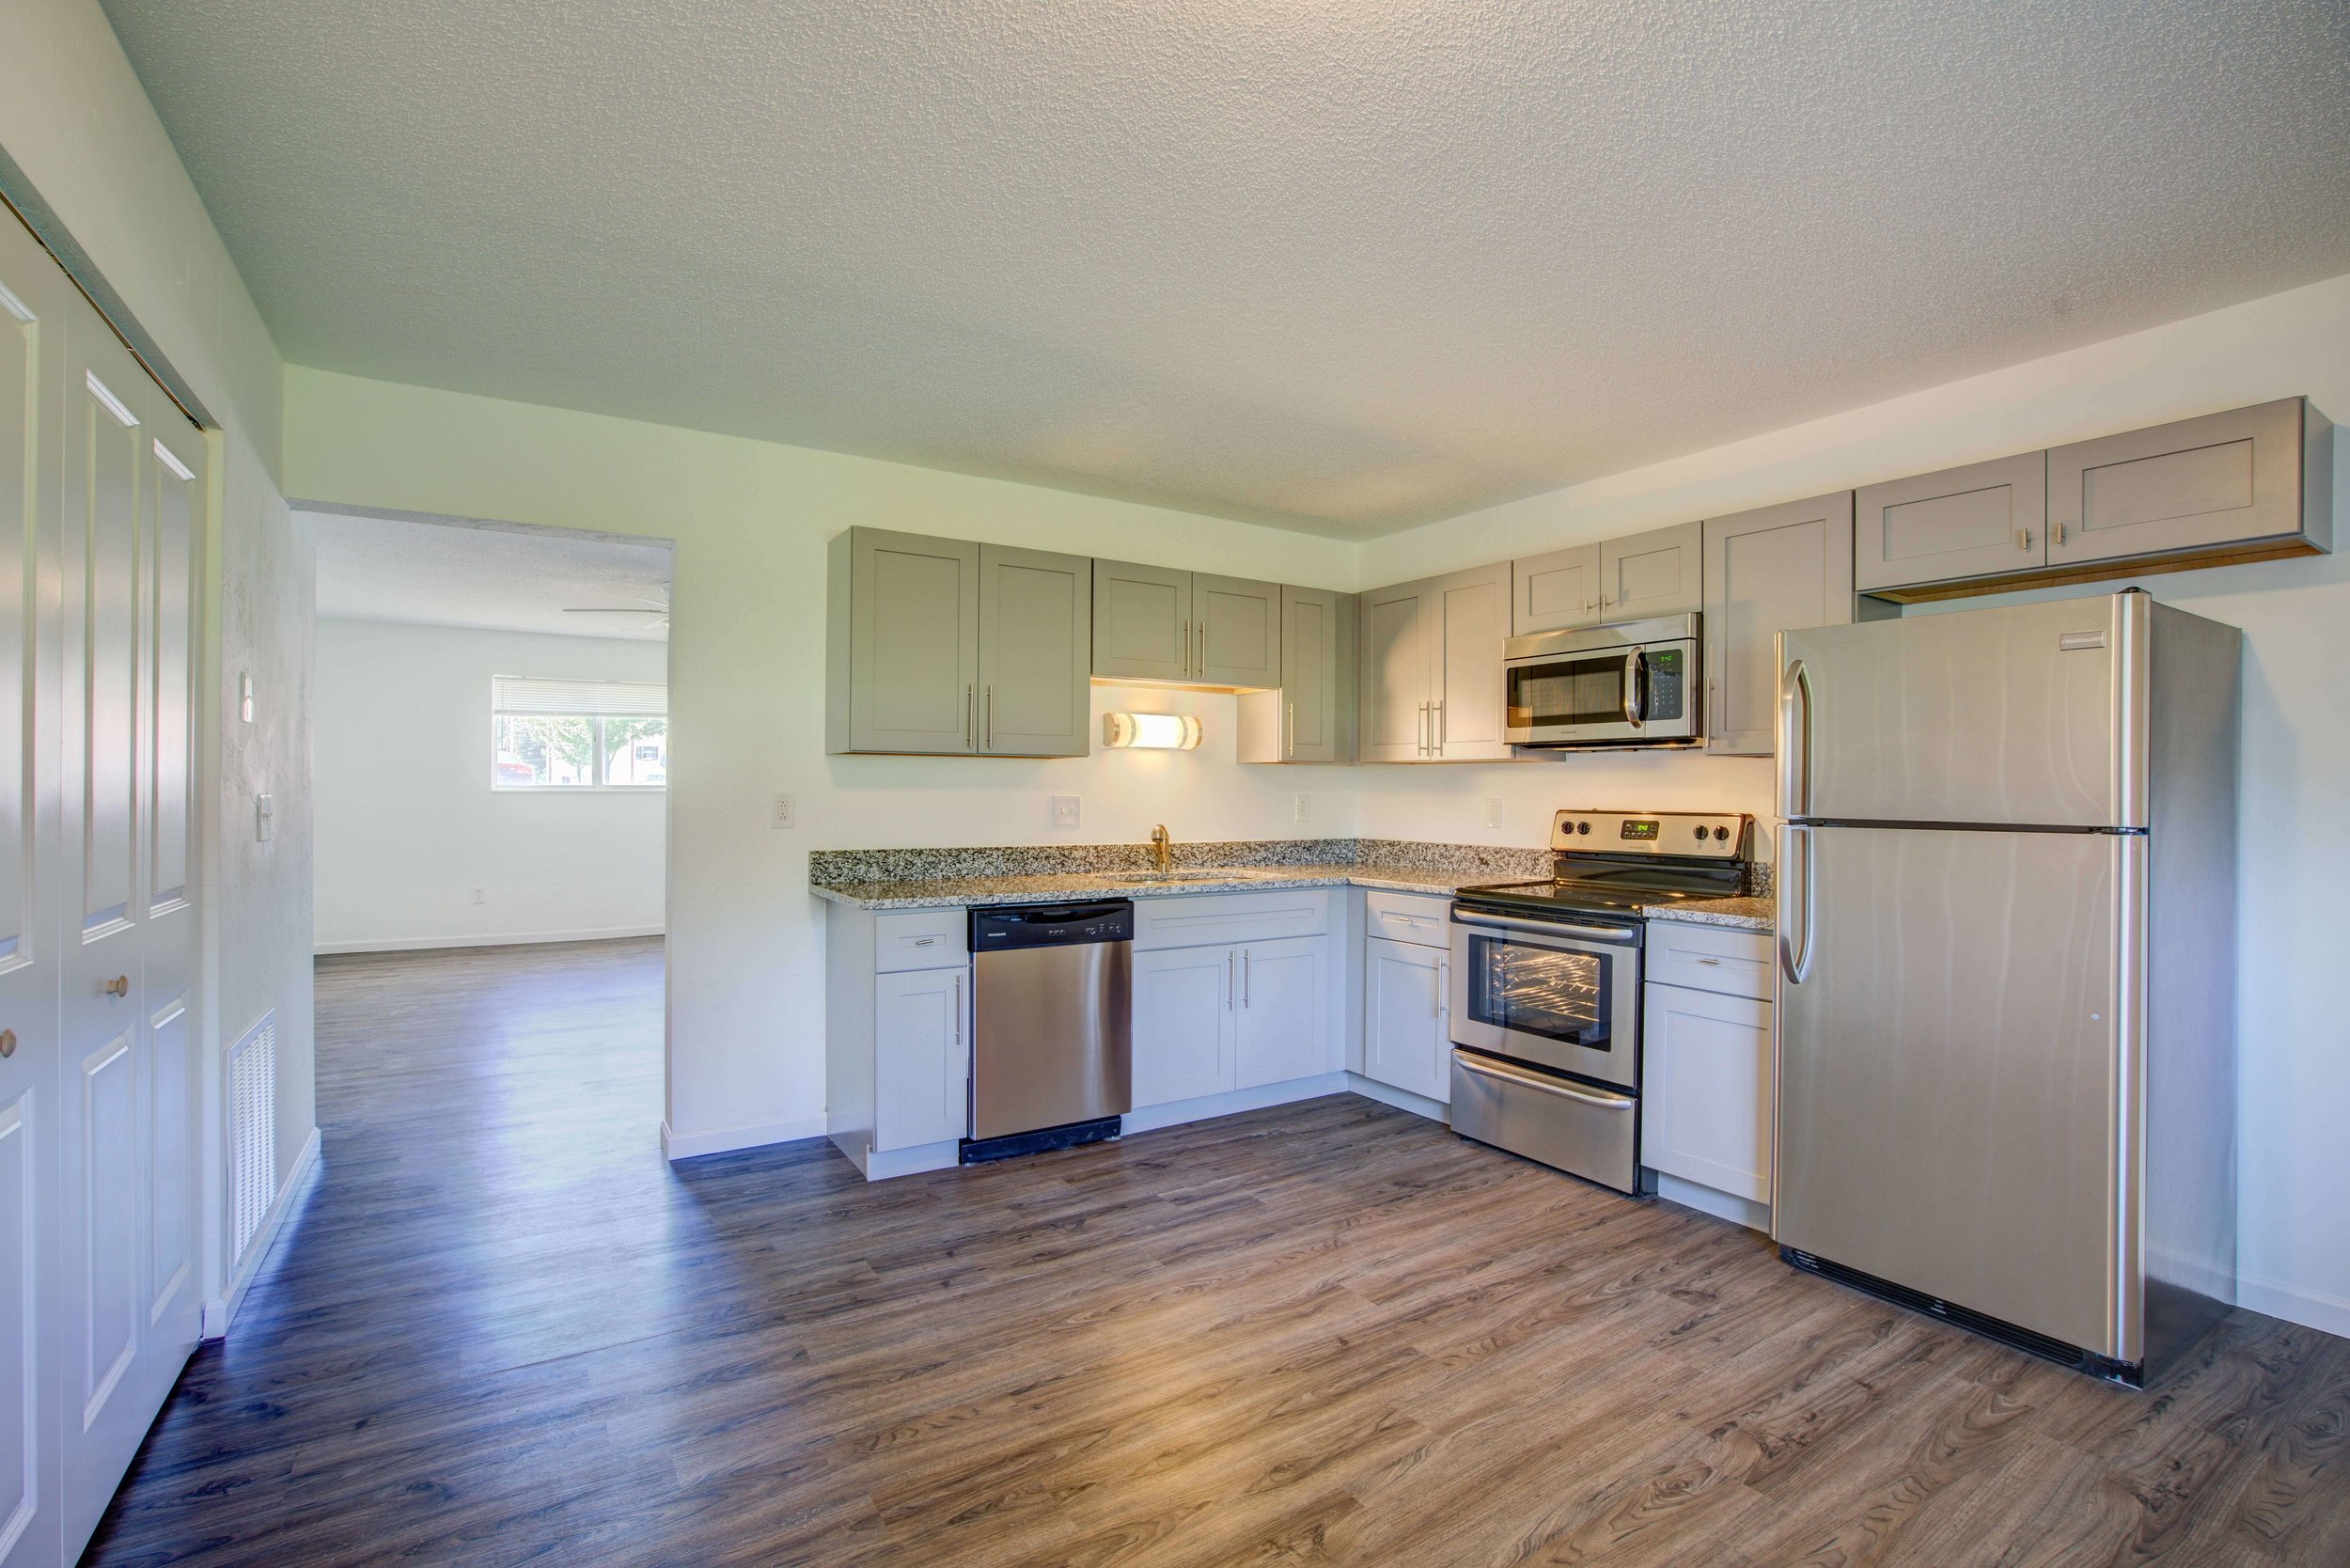 The Griffith - 2 Bed | 2 Bath | 1200 SF$915 Per MonthAvailable June 25th!